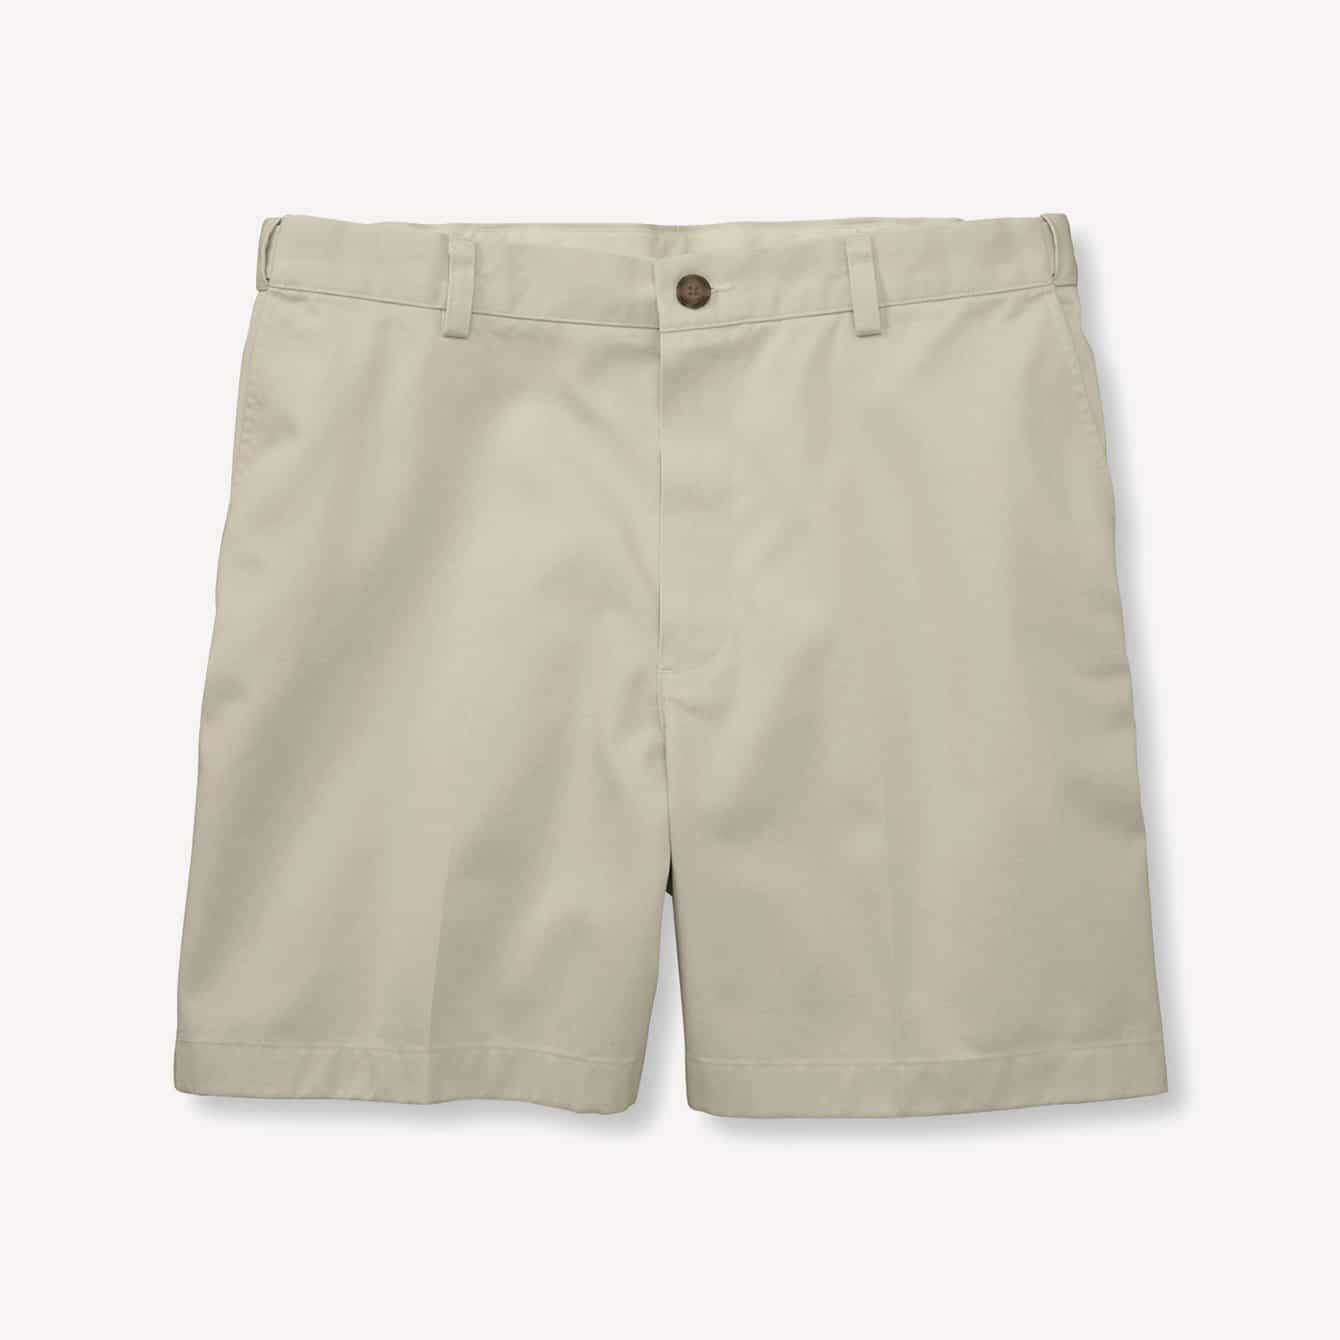 L.L Bean Double L Chino Shorts